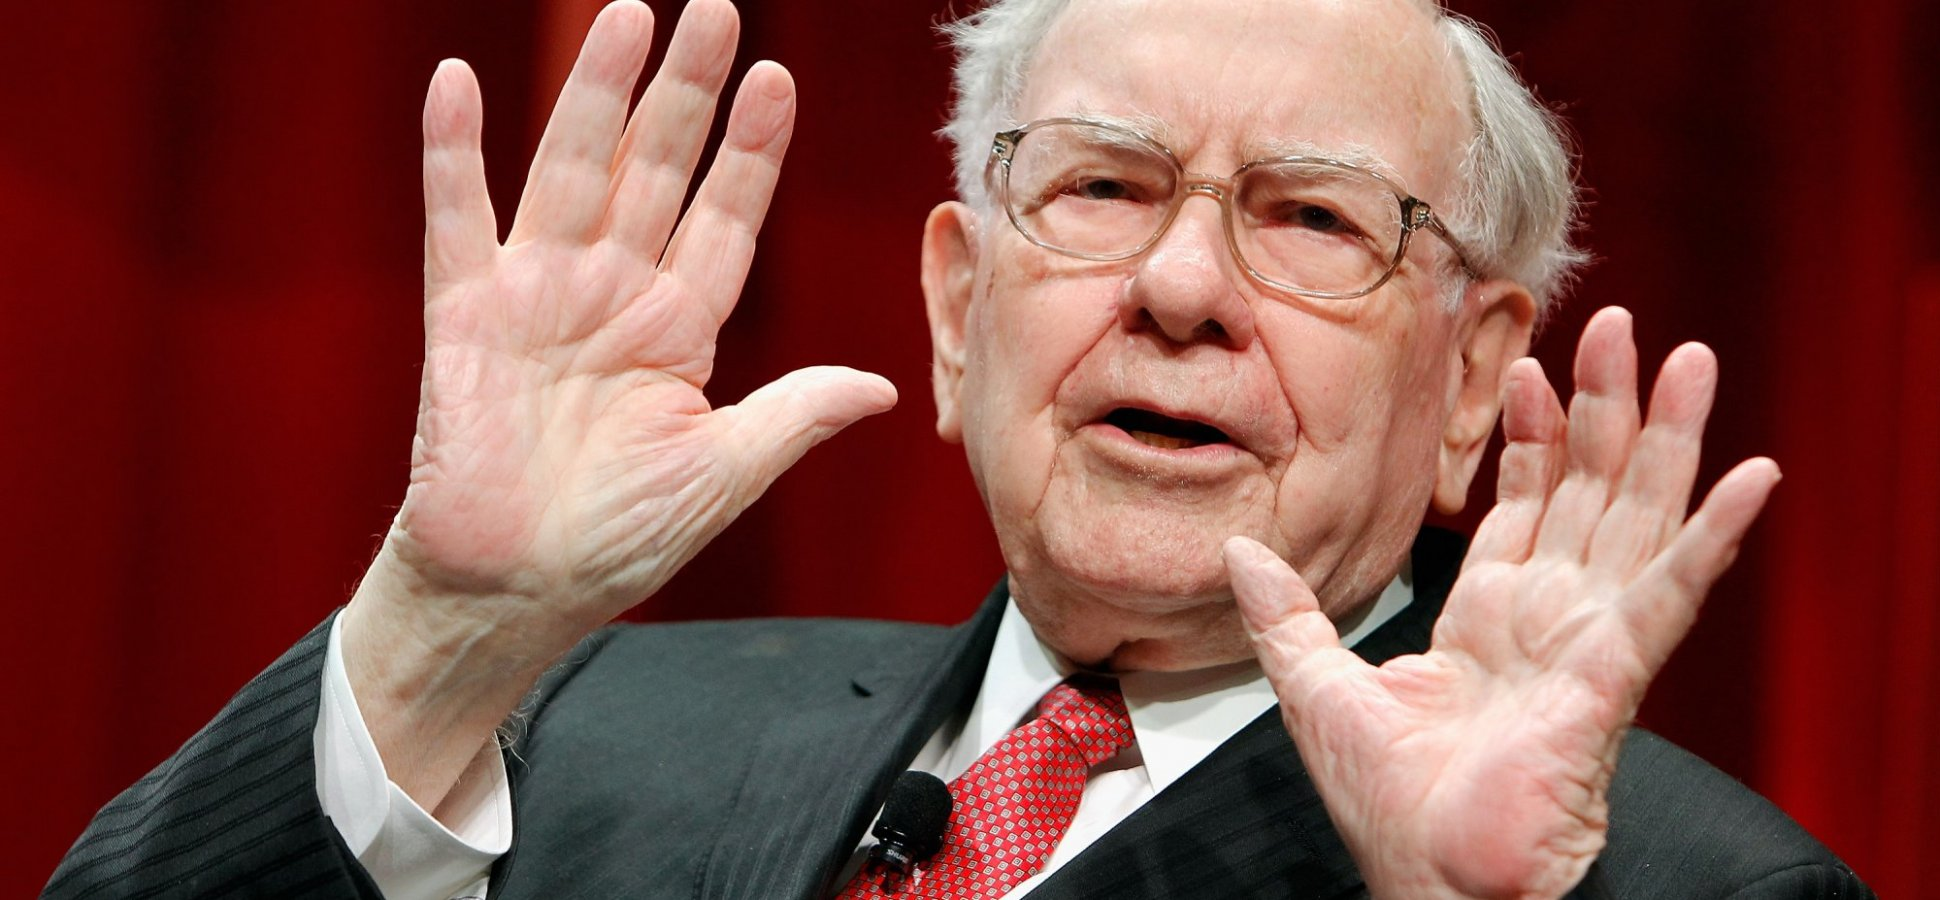 Want to Increase Your Worth By 50 Percent? Warren Buffett Says Honing This 1 Skill Is the Easiest Way to Do It